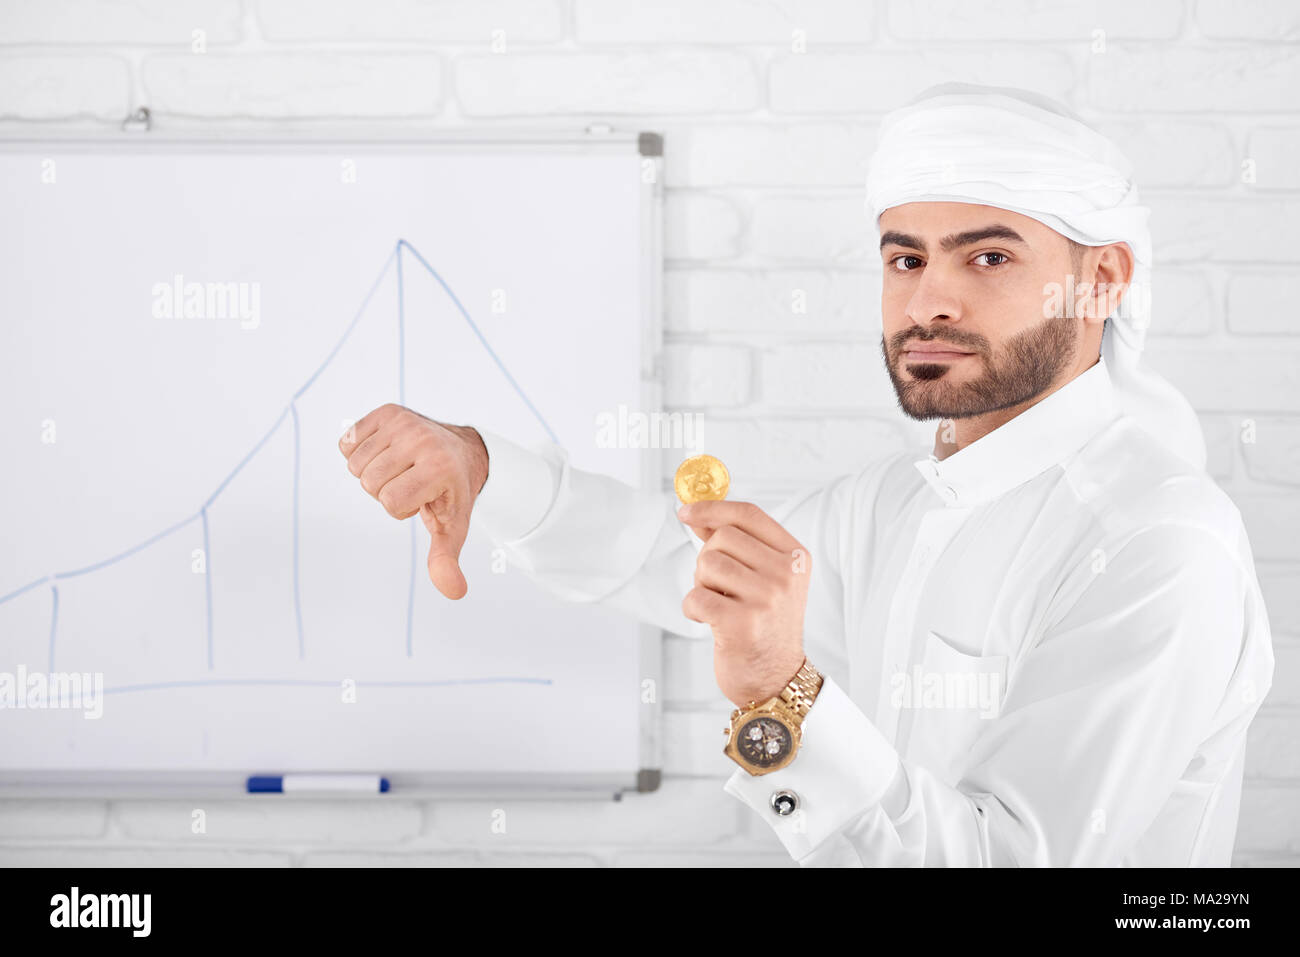 Attractive rich muslim male model in traditional Islamic clothing being serious and holding golden bitcoin and showing thumbs down. Horizontal shot. Financial problems, cryptocurrency, digital money. - Stock Image